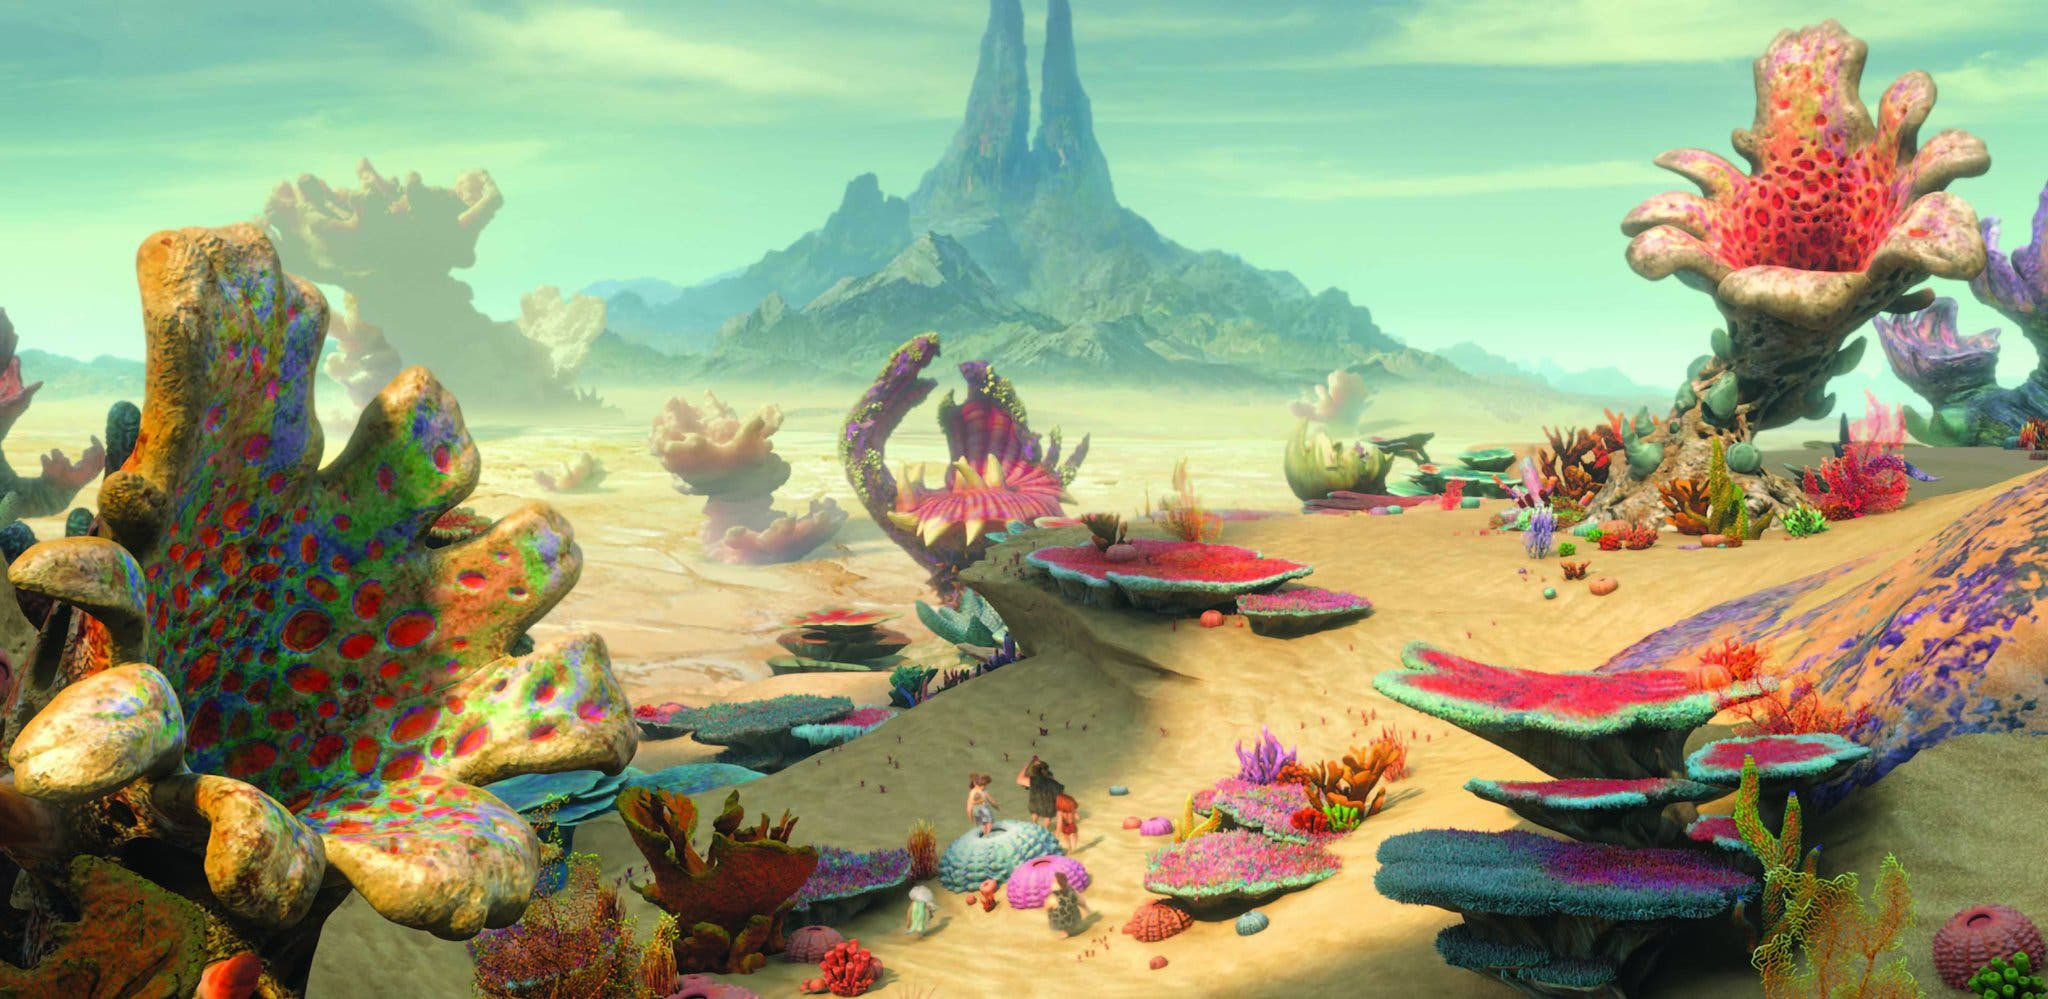 Concept art from The Croods (DreamWorks Animation)